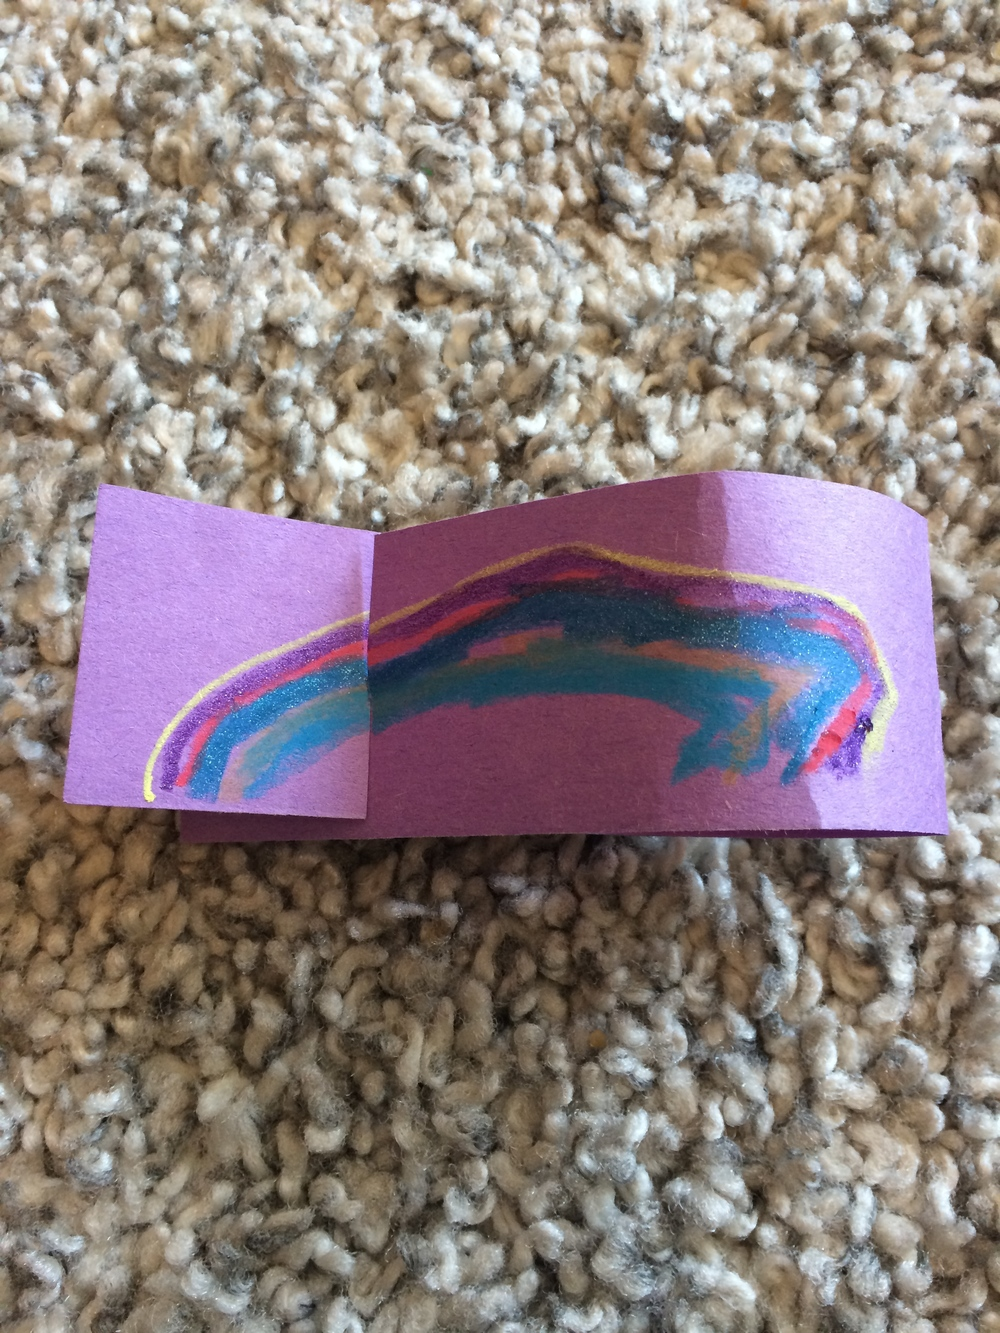 Paper Fish Pinterest in Real Life 2 from Encourage Play